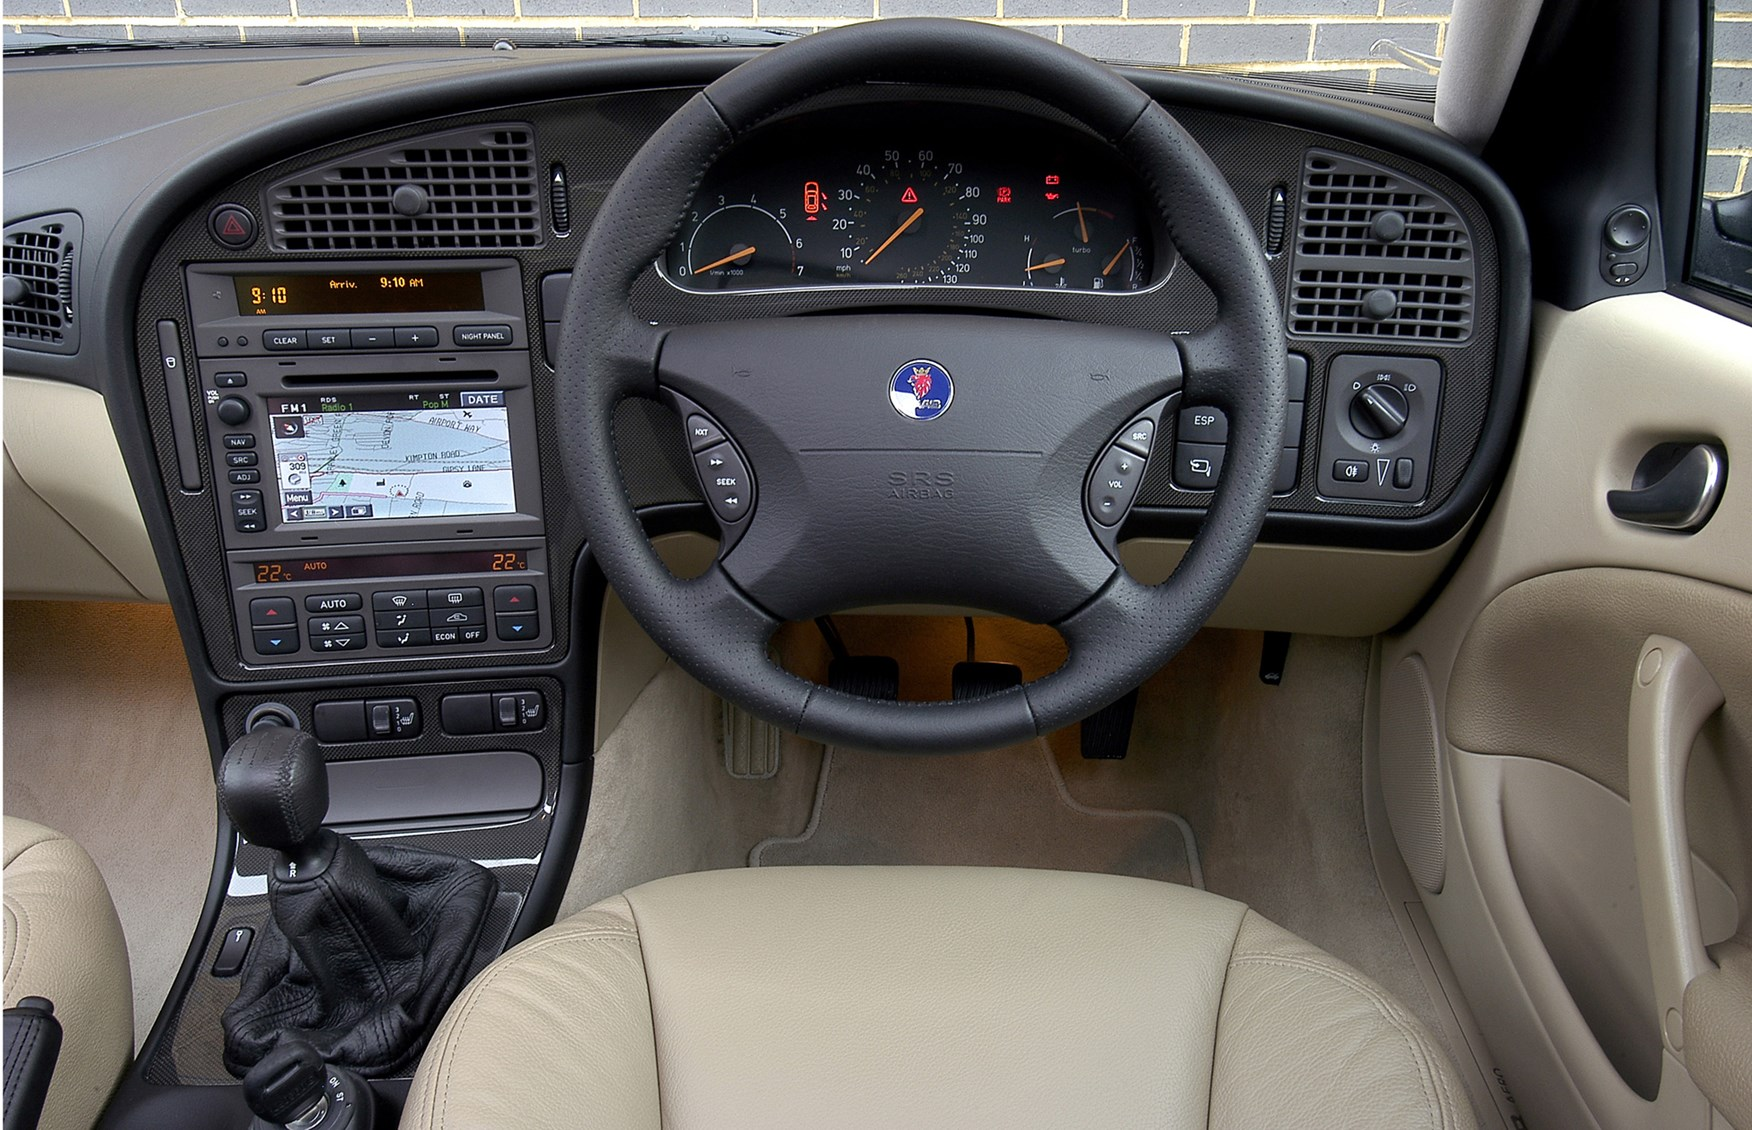 saab 9 5 saloon review 1997 2005 parkers. Black Bedroom Furniture Sets. Home Design Ideas